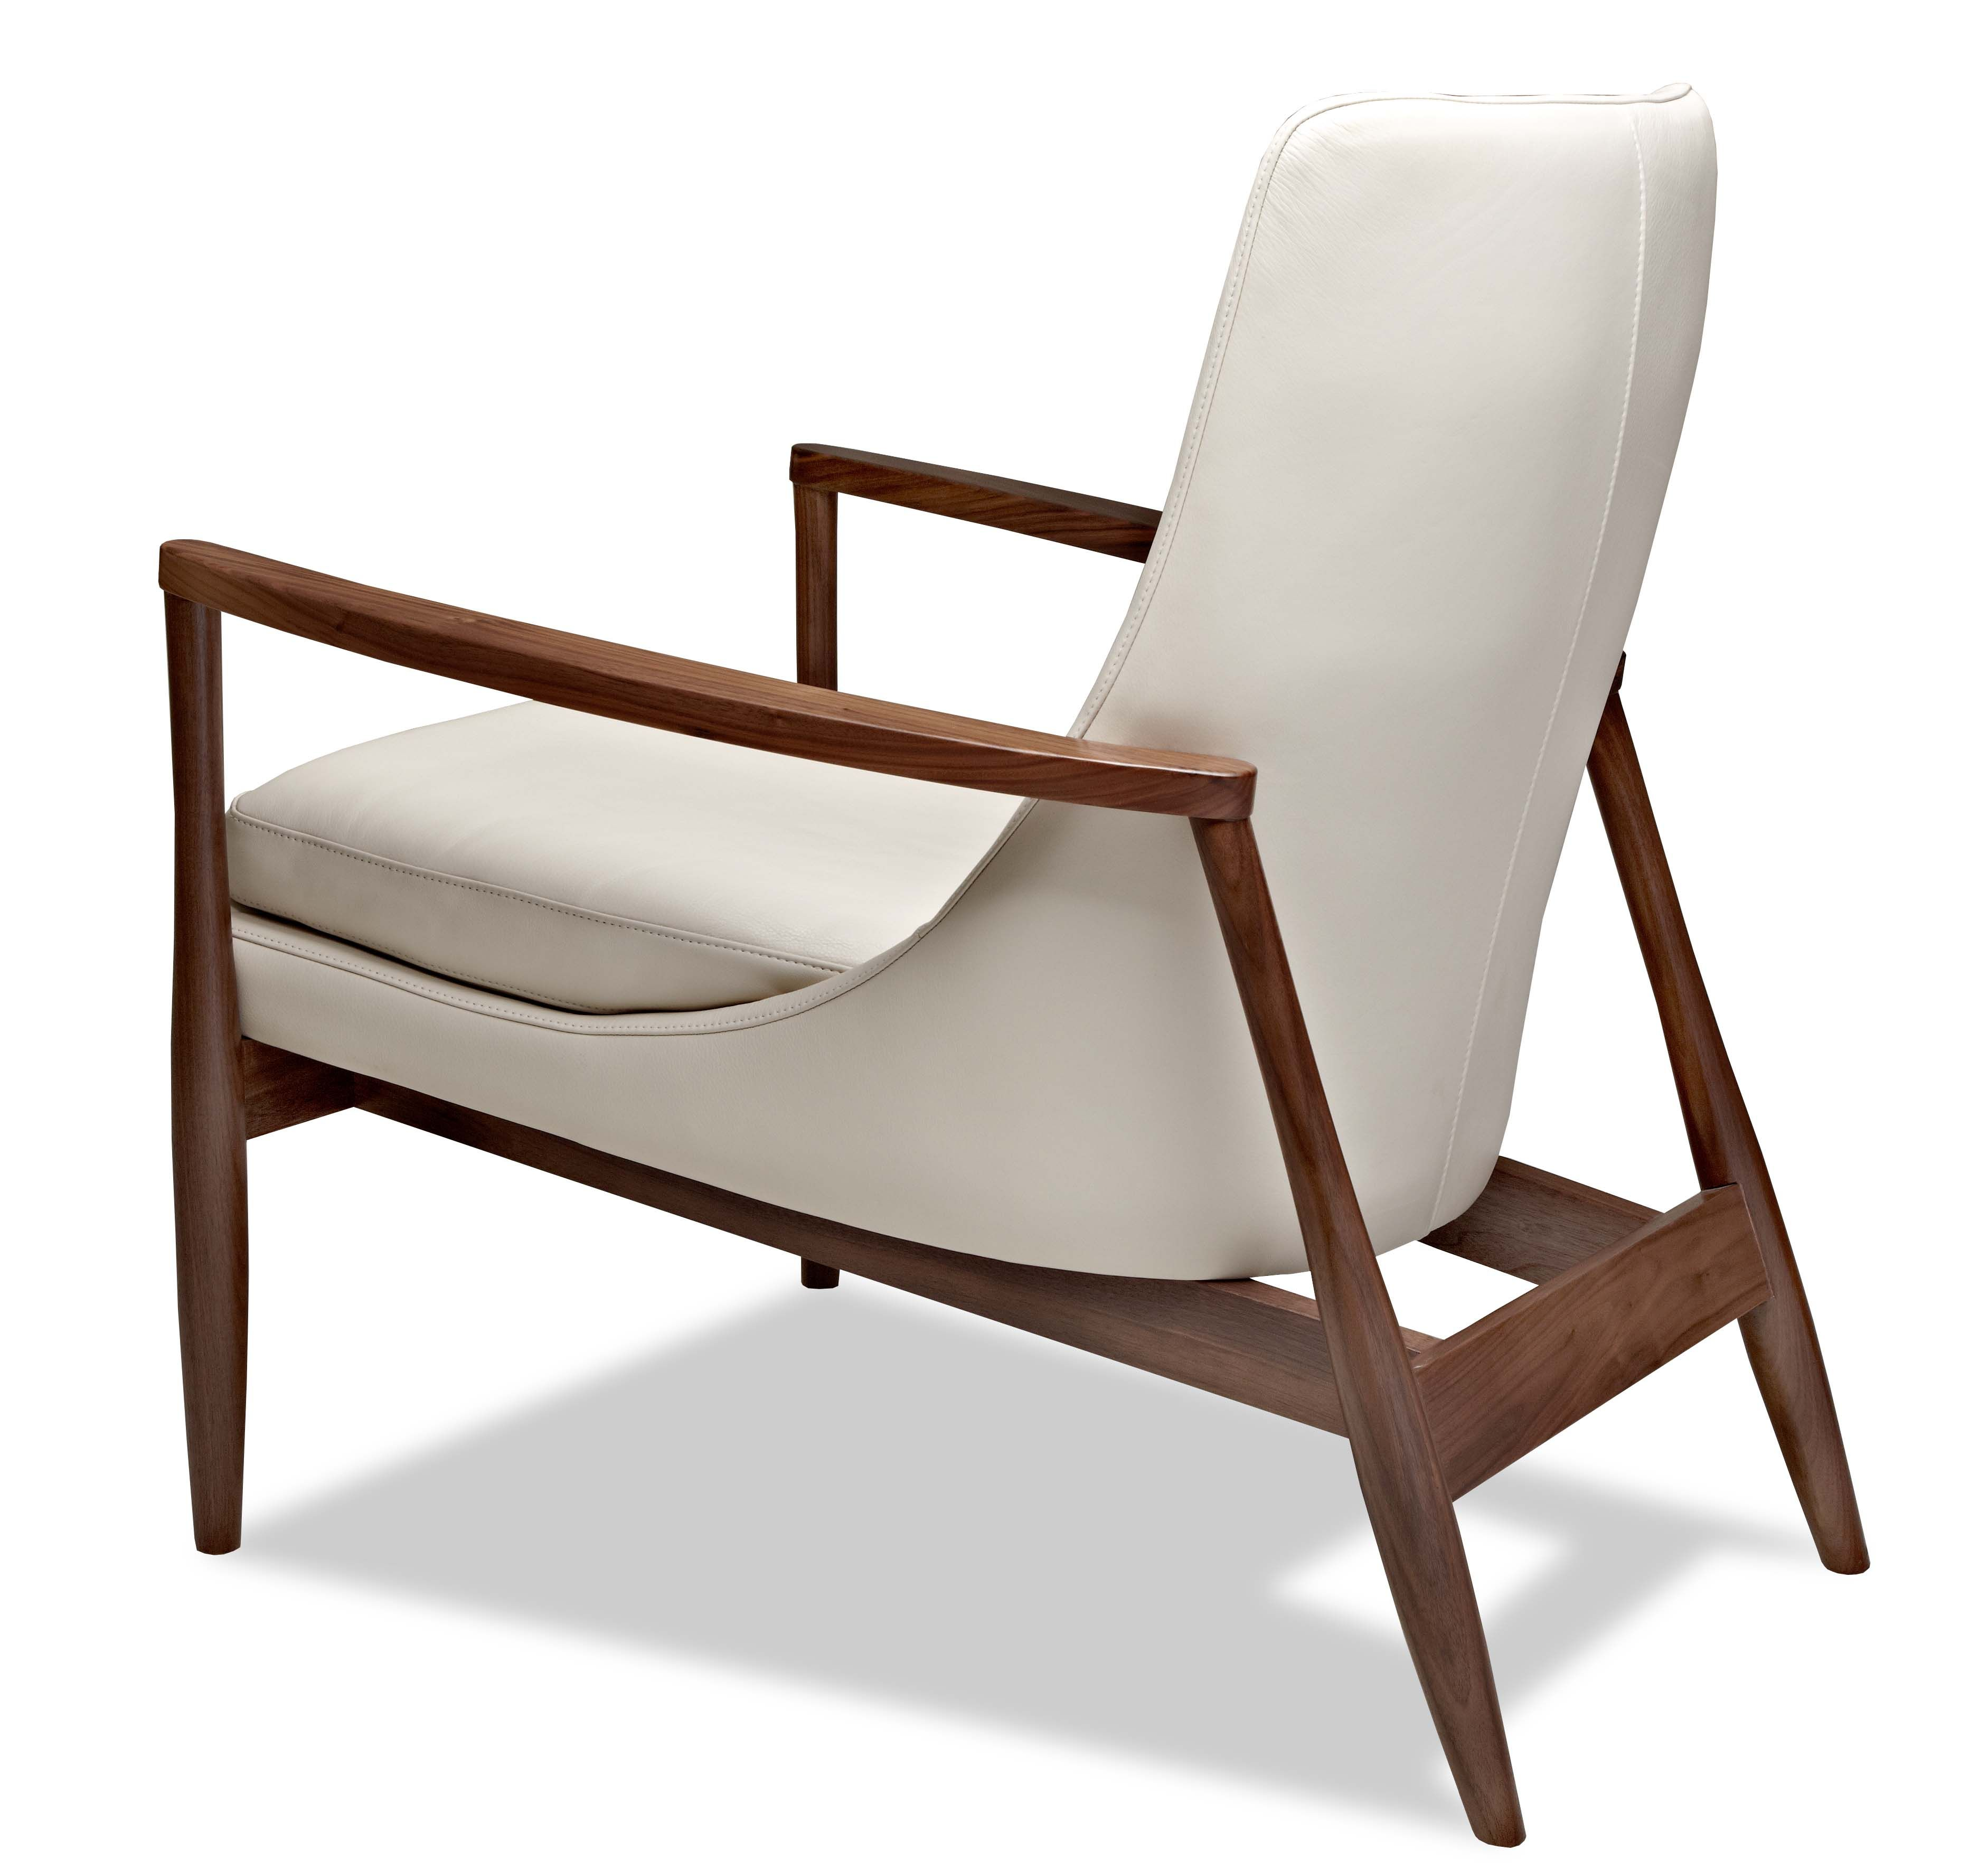 A Beautiful Chair By American Leather. Love The Oval Curvature Of The Arms  And The